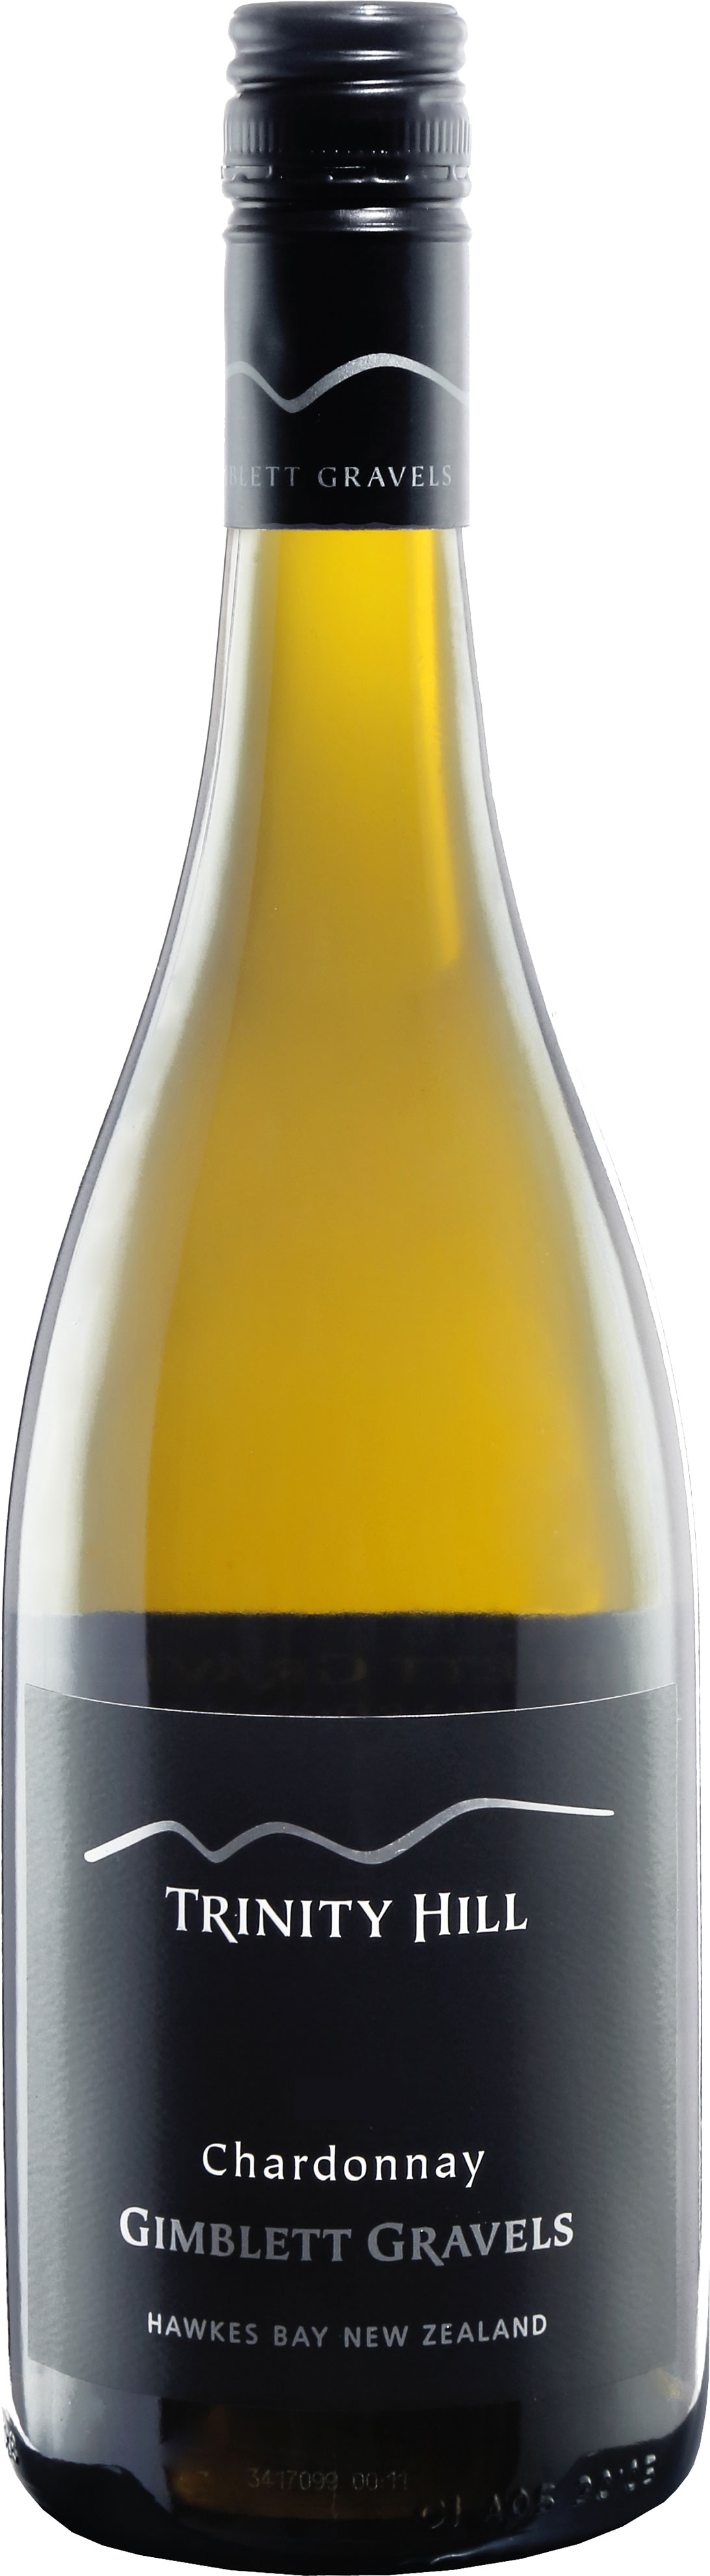 Trinity Hill - Gimblett Gravels Chardonnay 2016 75cl Bottle